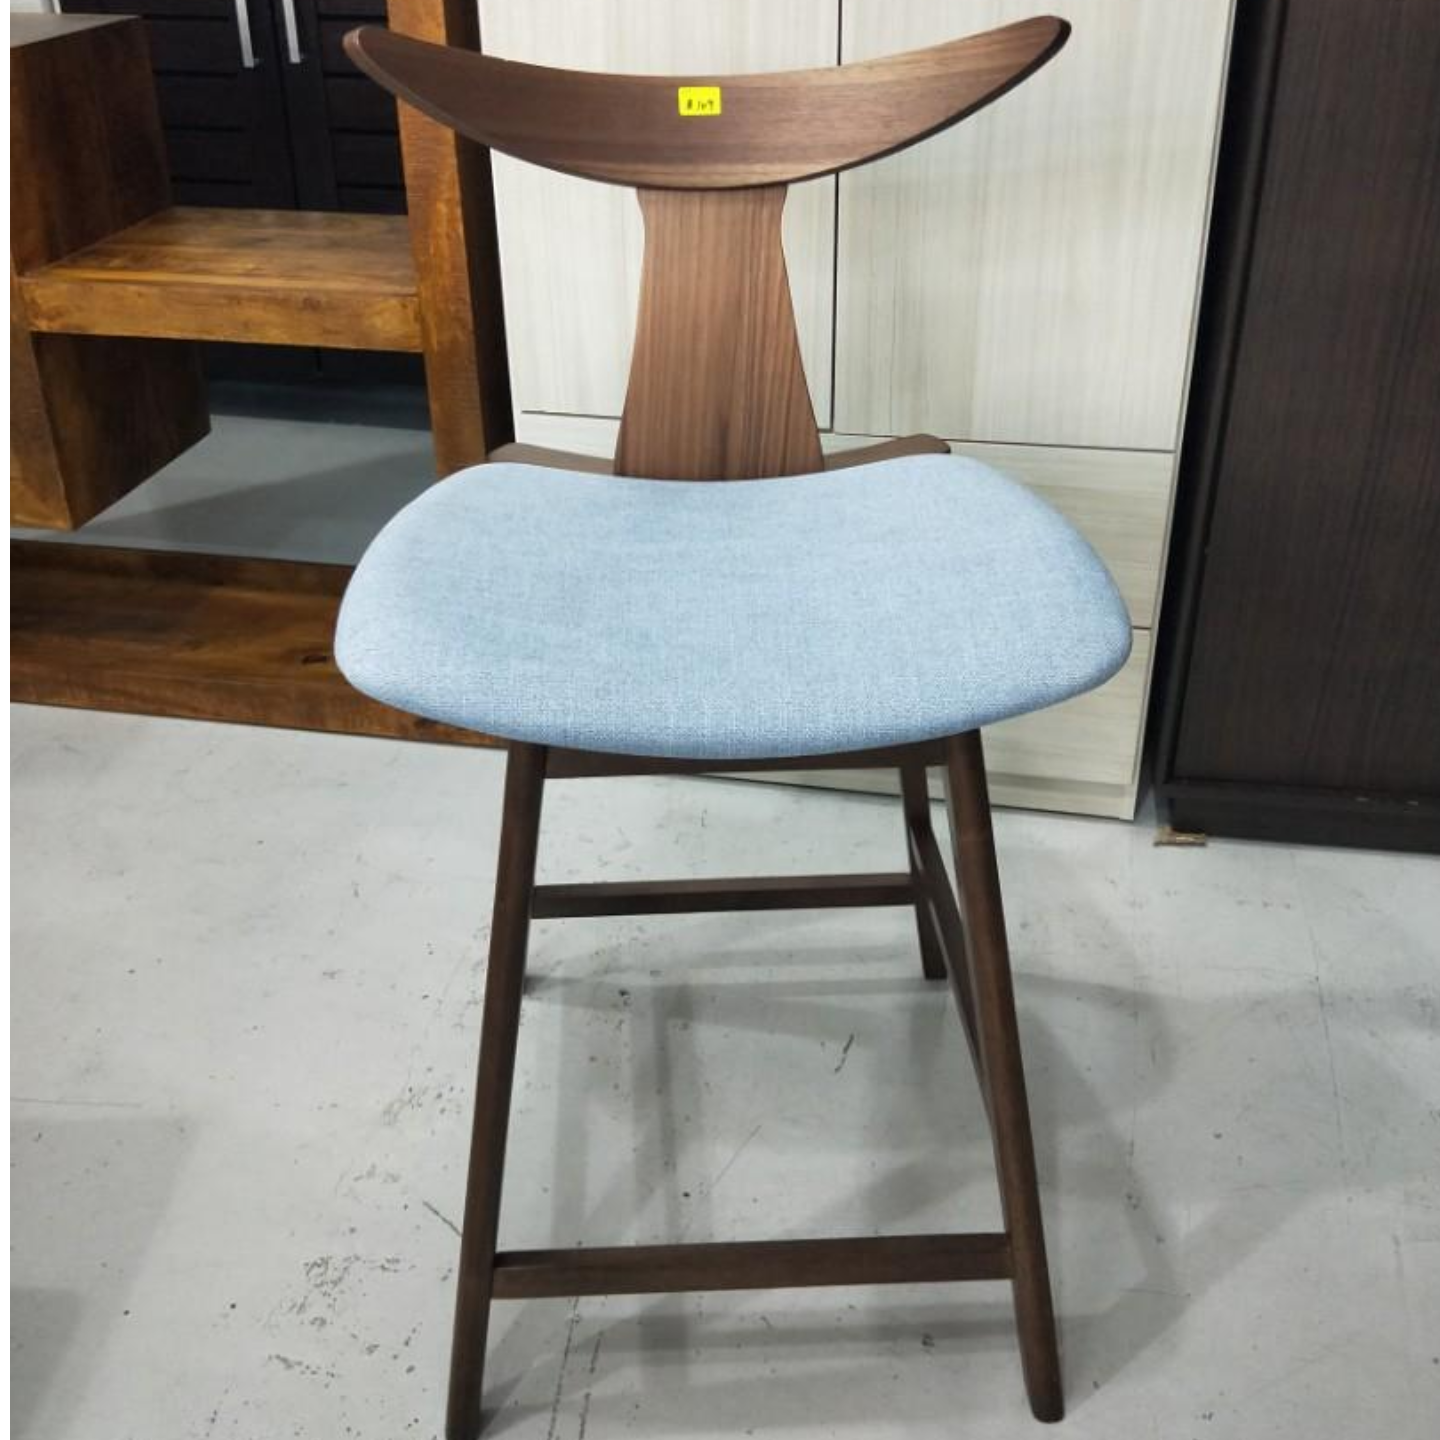 DELONES High Chair in LIGHT BLUE